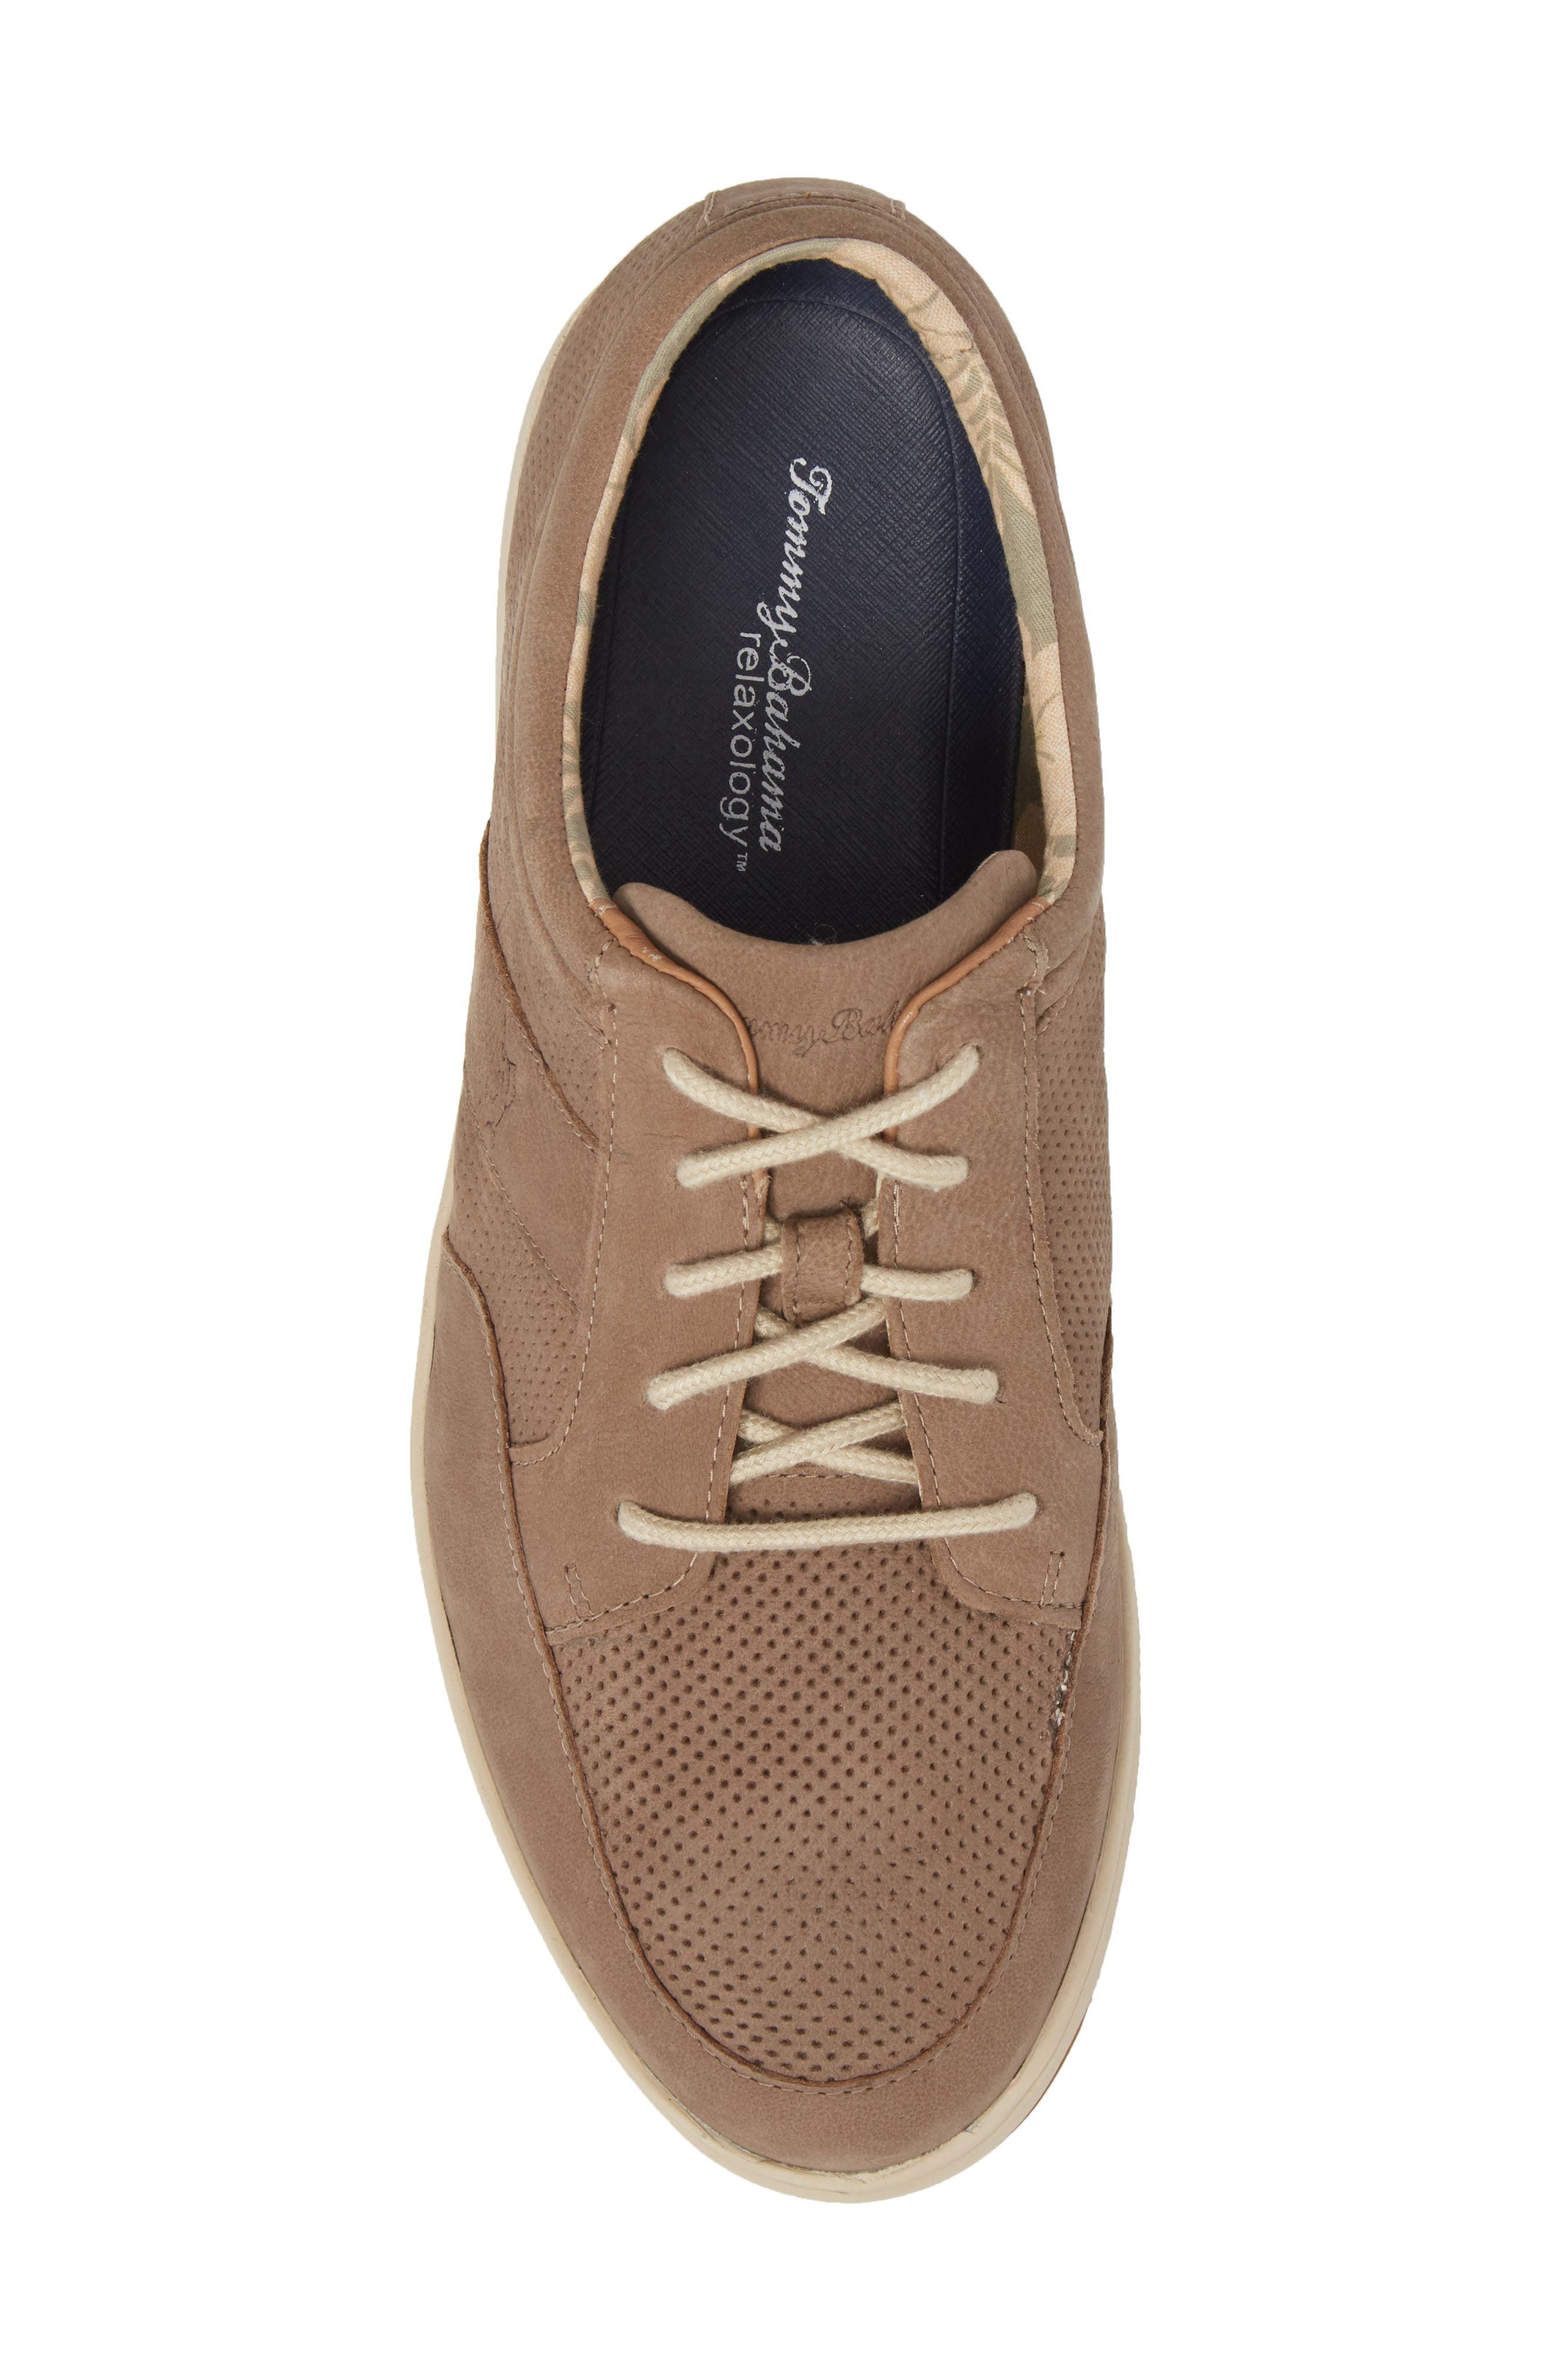 Caicos Authentic Low Top Sneaker,                             Alternate thumbnail 5, color,                             Taupe Leather